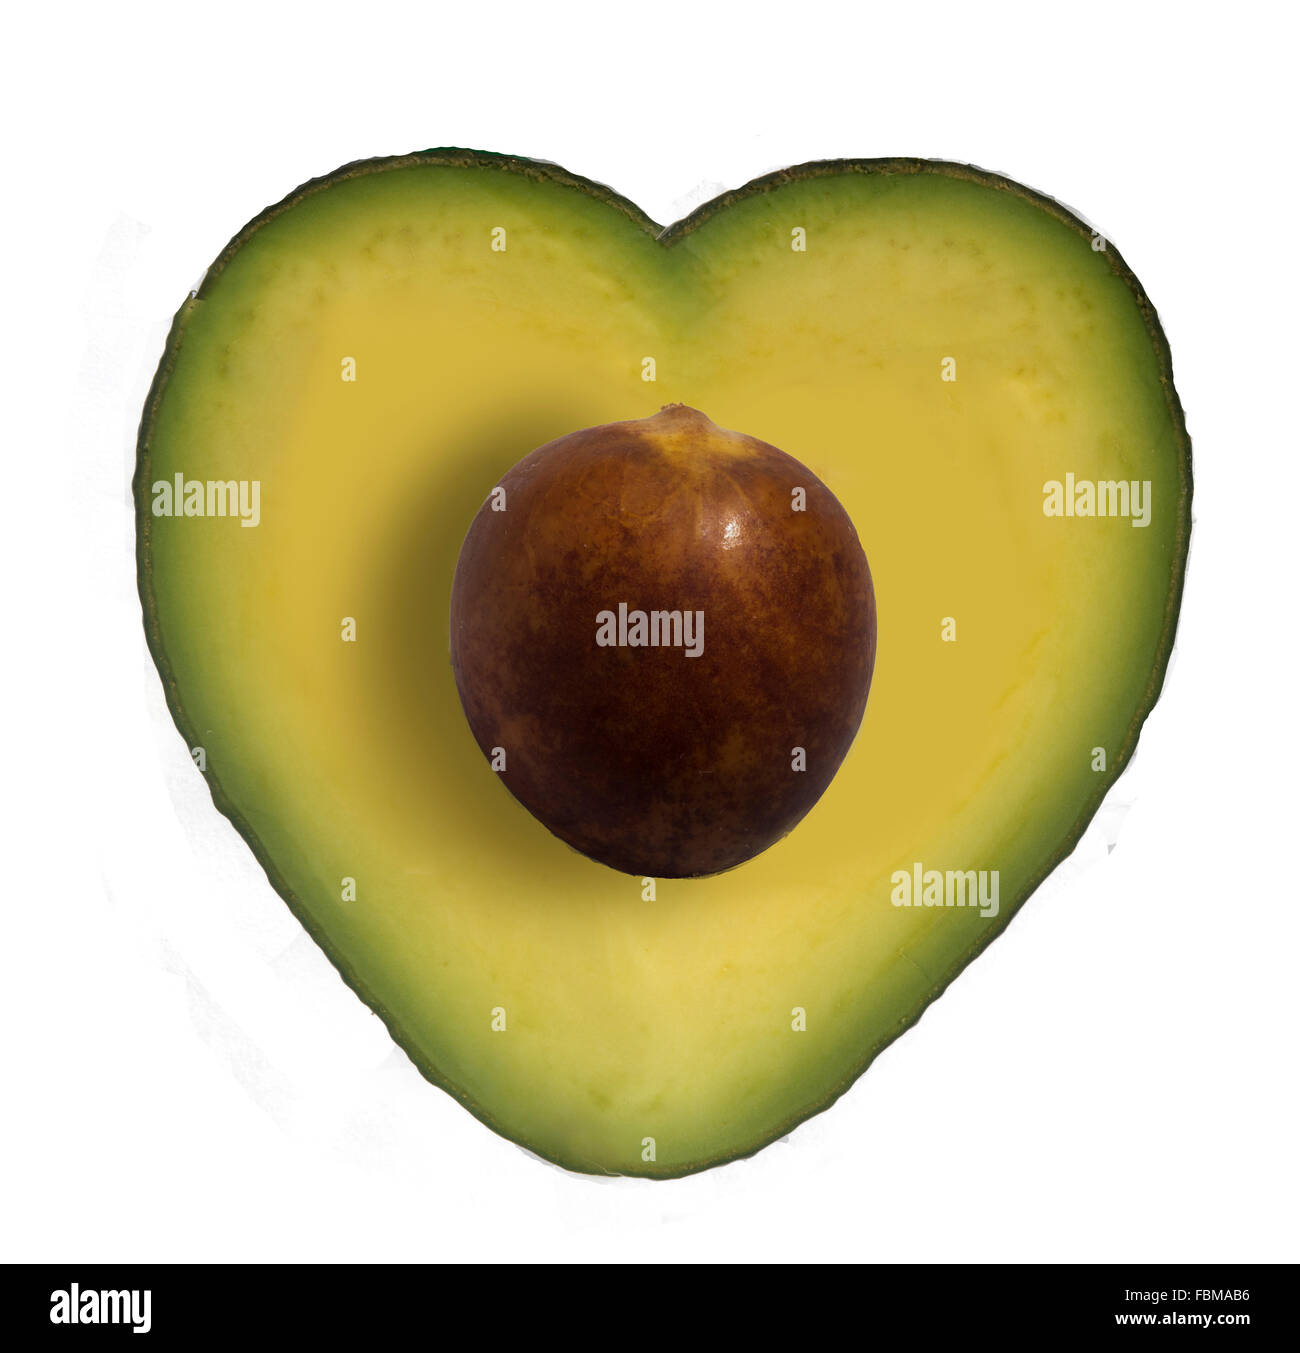 Close-Up Of Avocado Cut In Heart Shape Against White Background - Stock Image